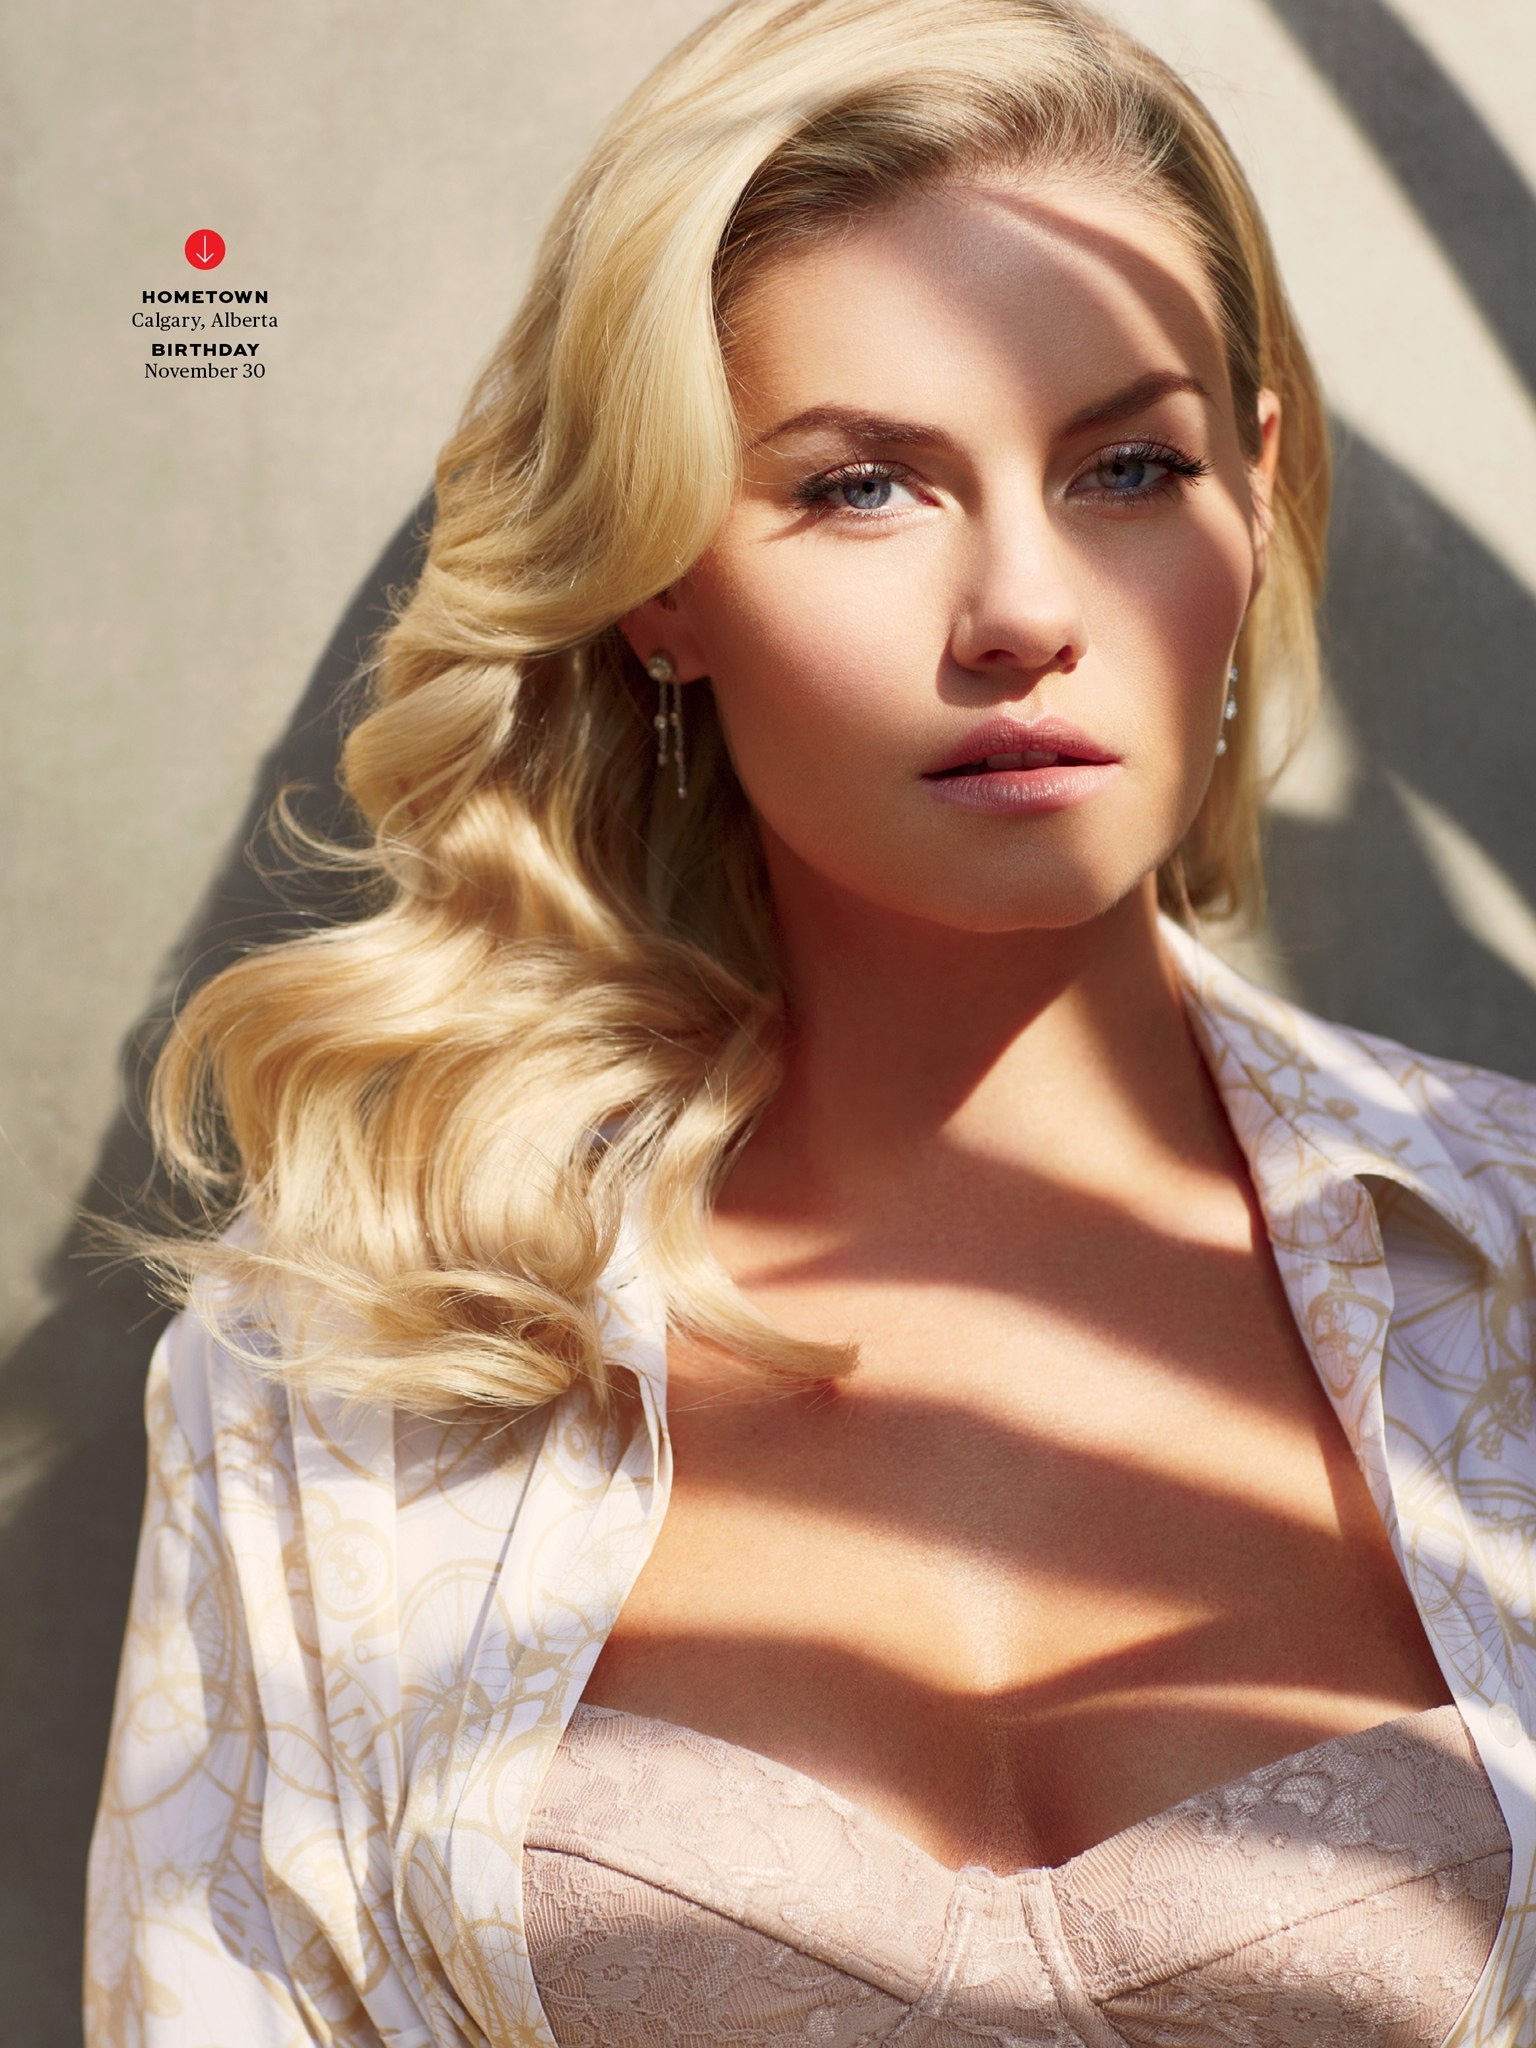 Elisha Cuthbert Latest Photos: Elisha Cuthbert: Maxim's Most Beautiful Woman On TV 2013